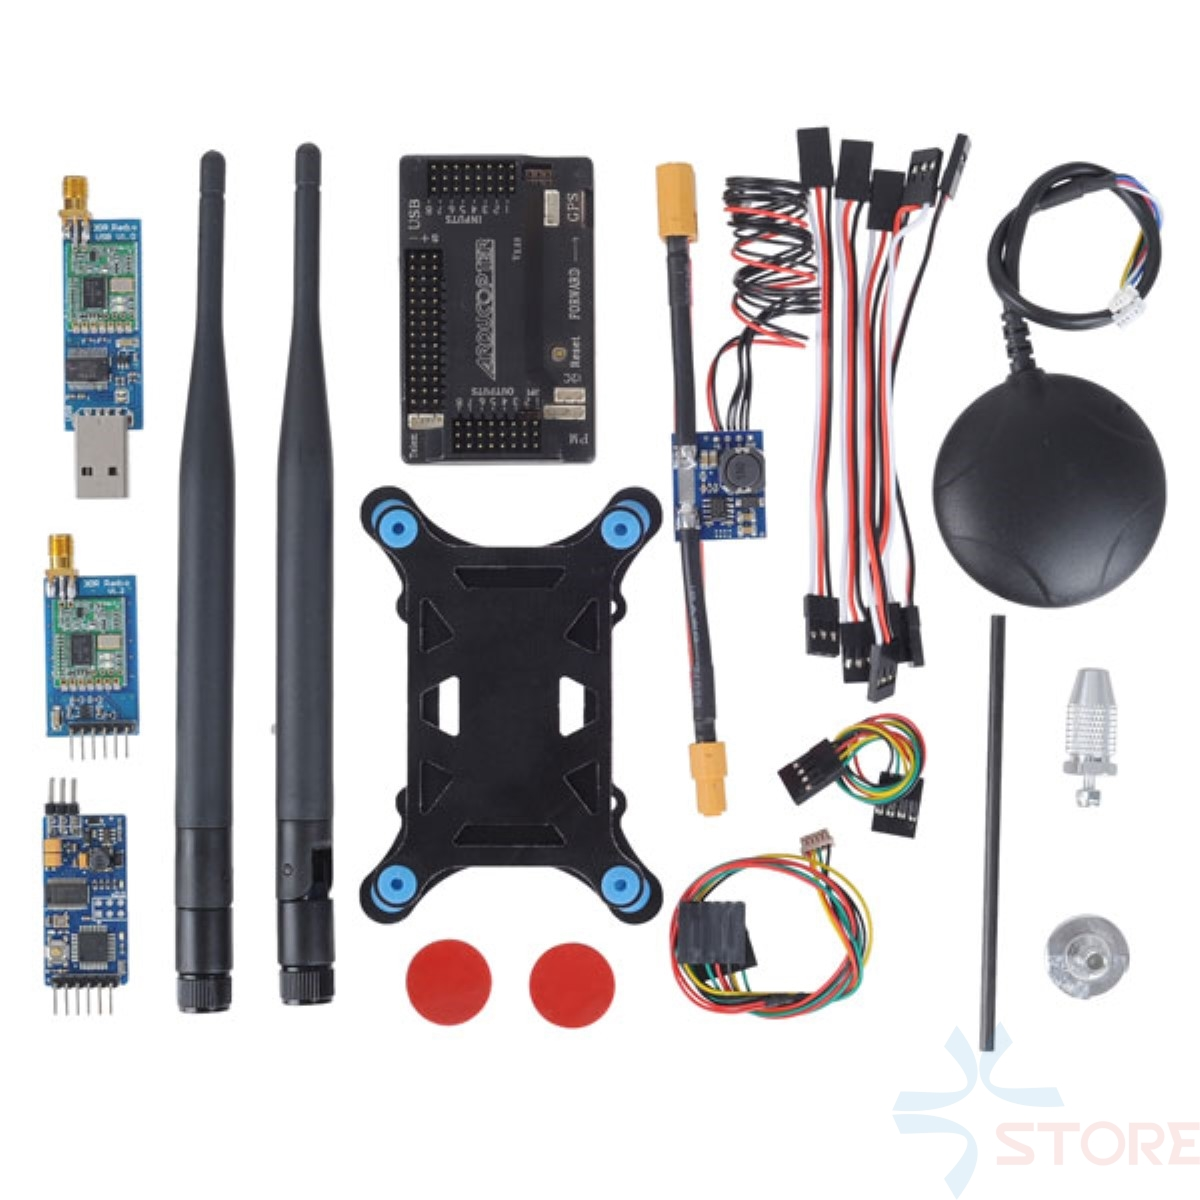 APM 2.6 ArduPilot Flight Controller + GPS + 100mw 3DR Radio Telemetry 915Mhz + Minimosd + Current Sensor apm 2 5 3dr telemetry osd y cable red black white